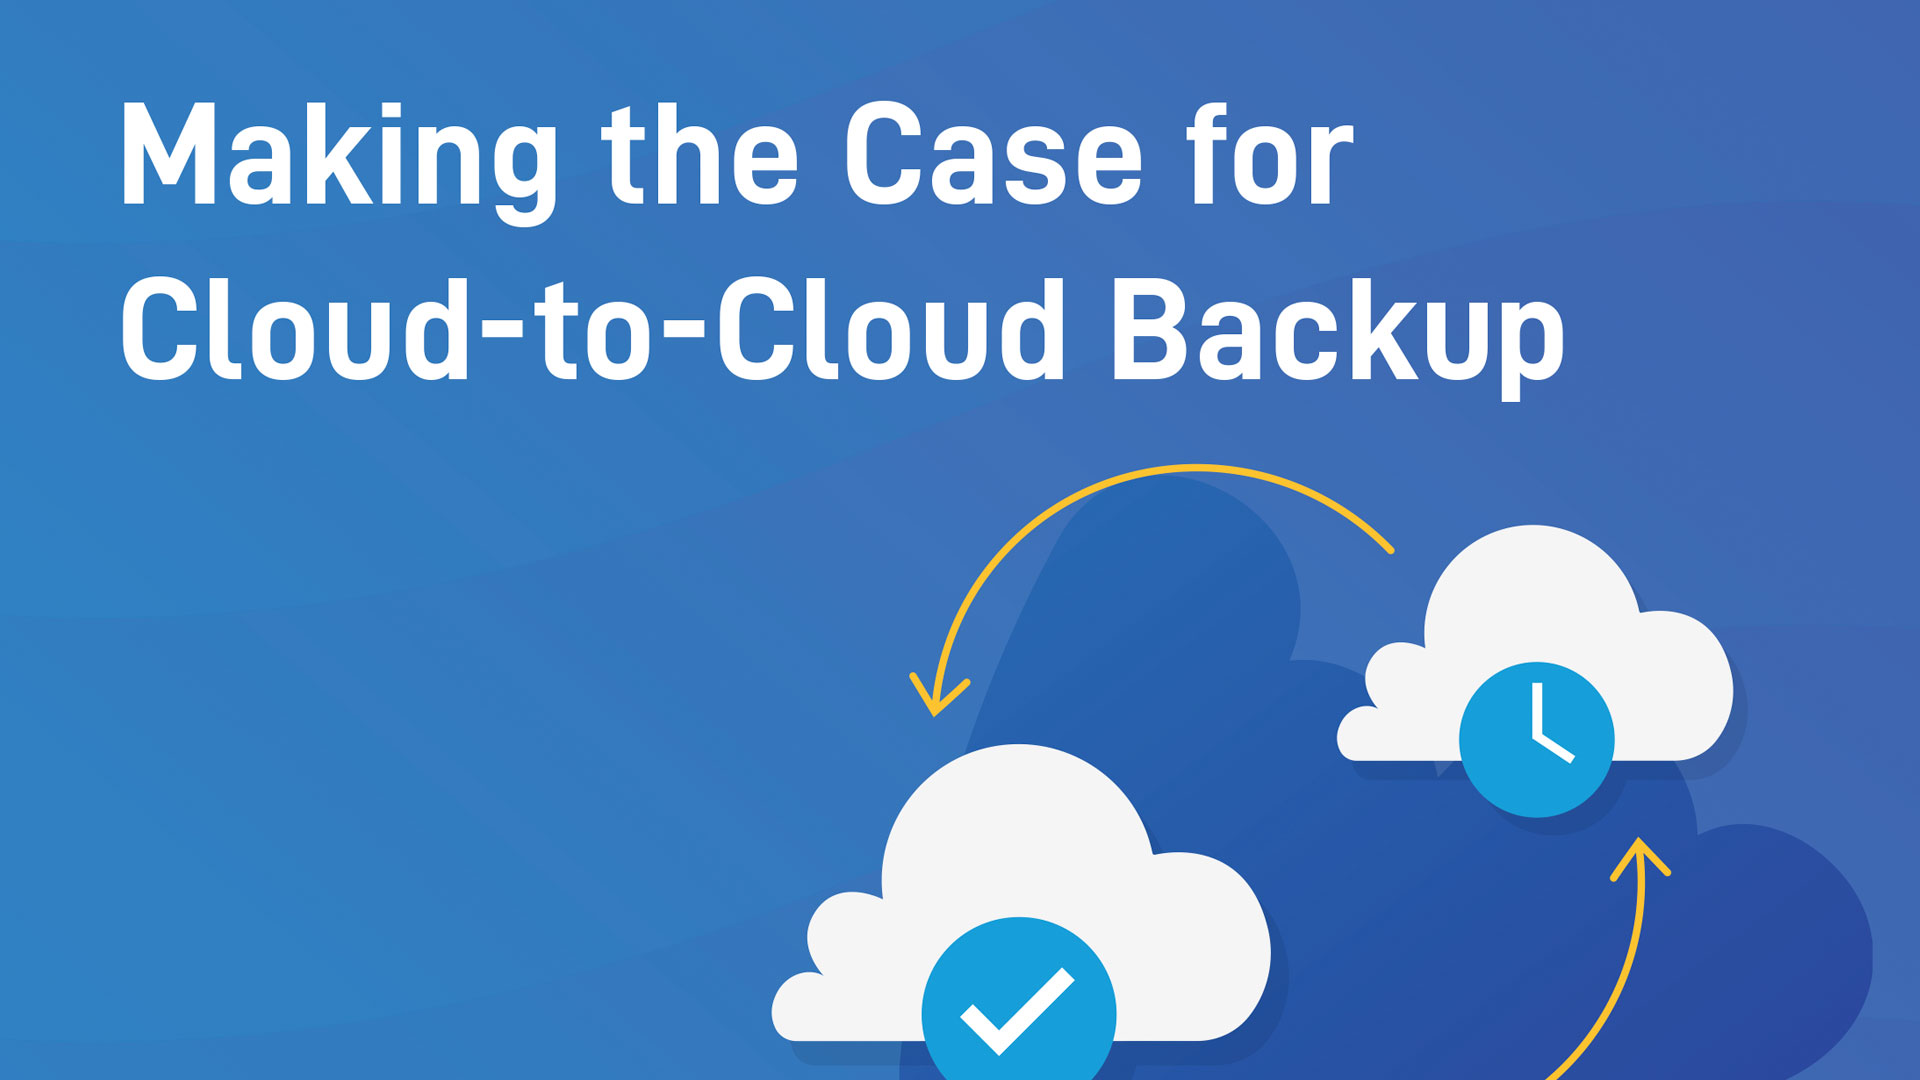 Making the Case for Cloud-to-Cloud Backup